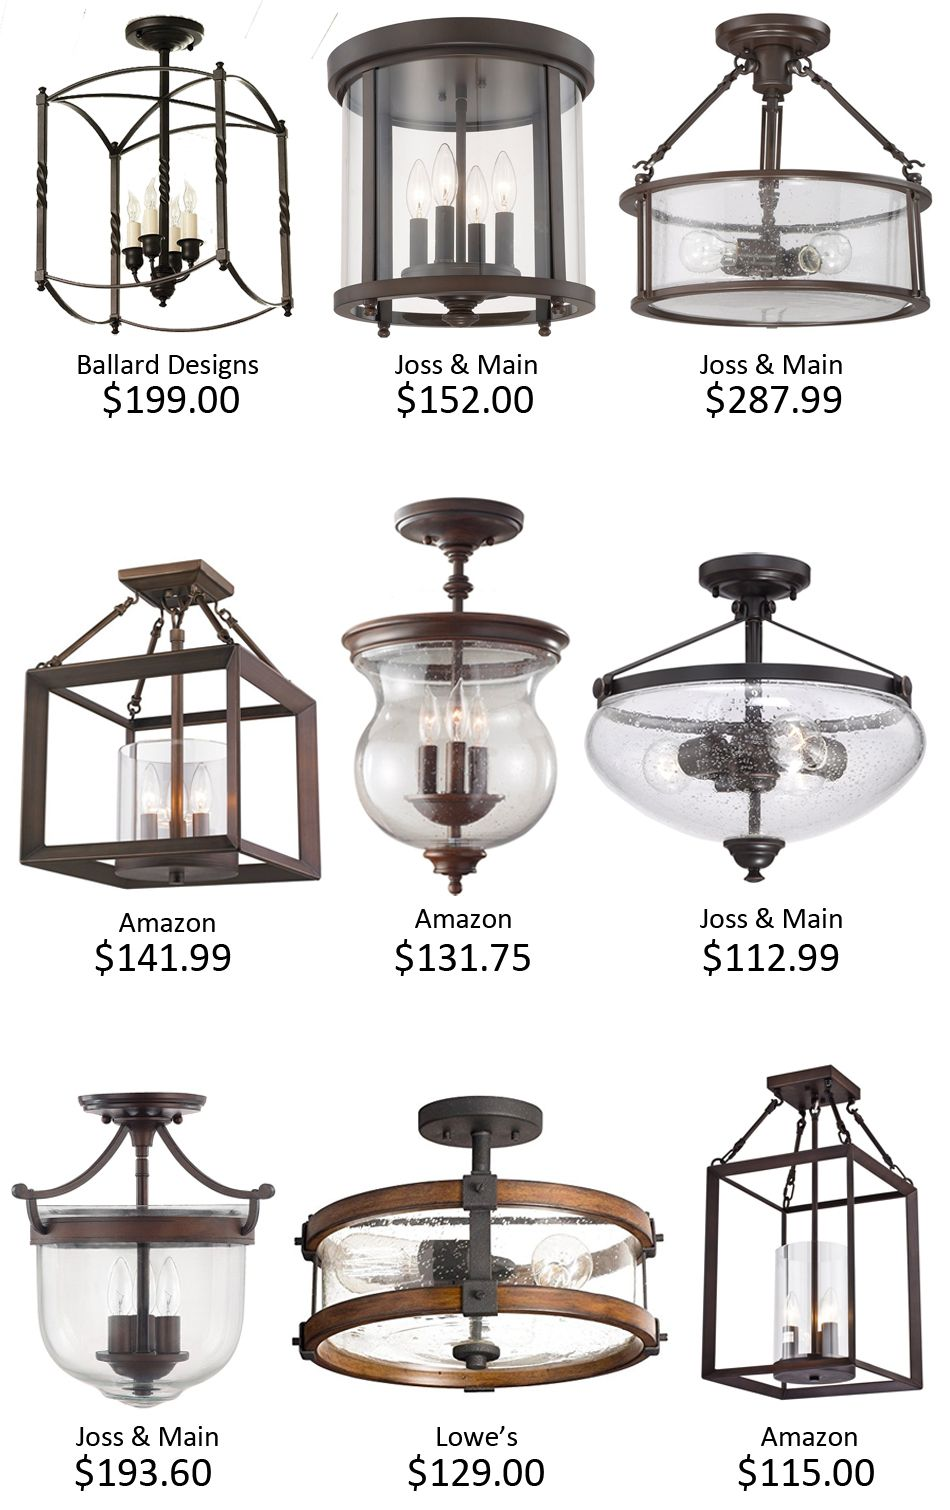 Foyer lighting options pretty choices for the entry foyer